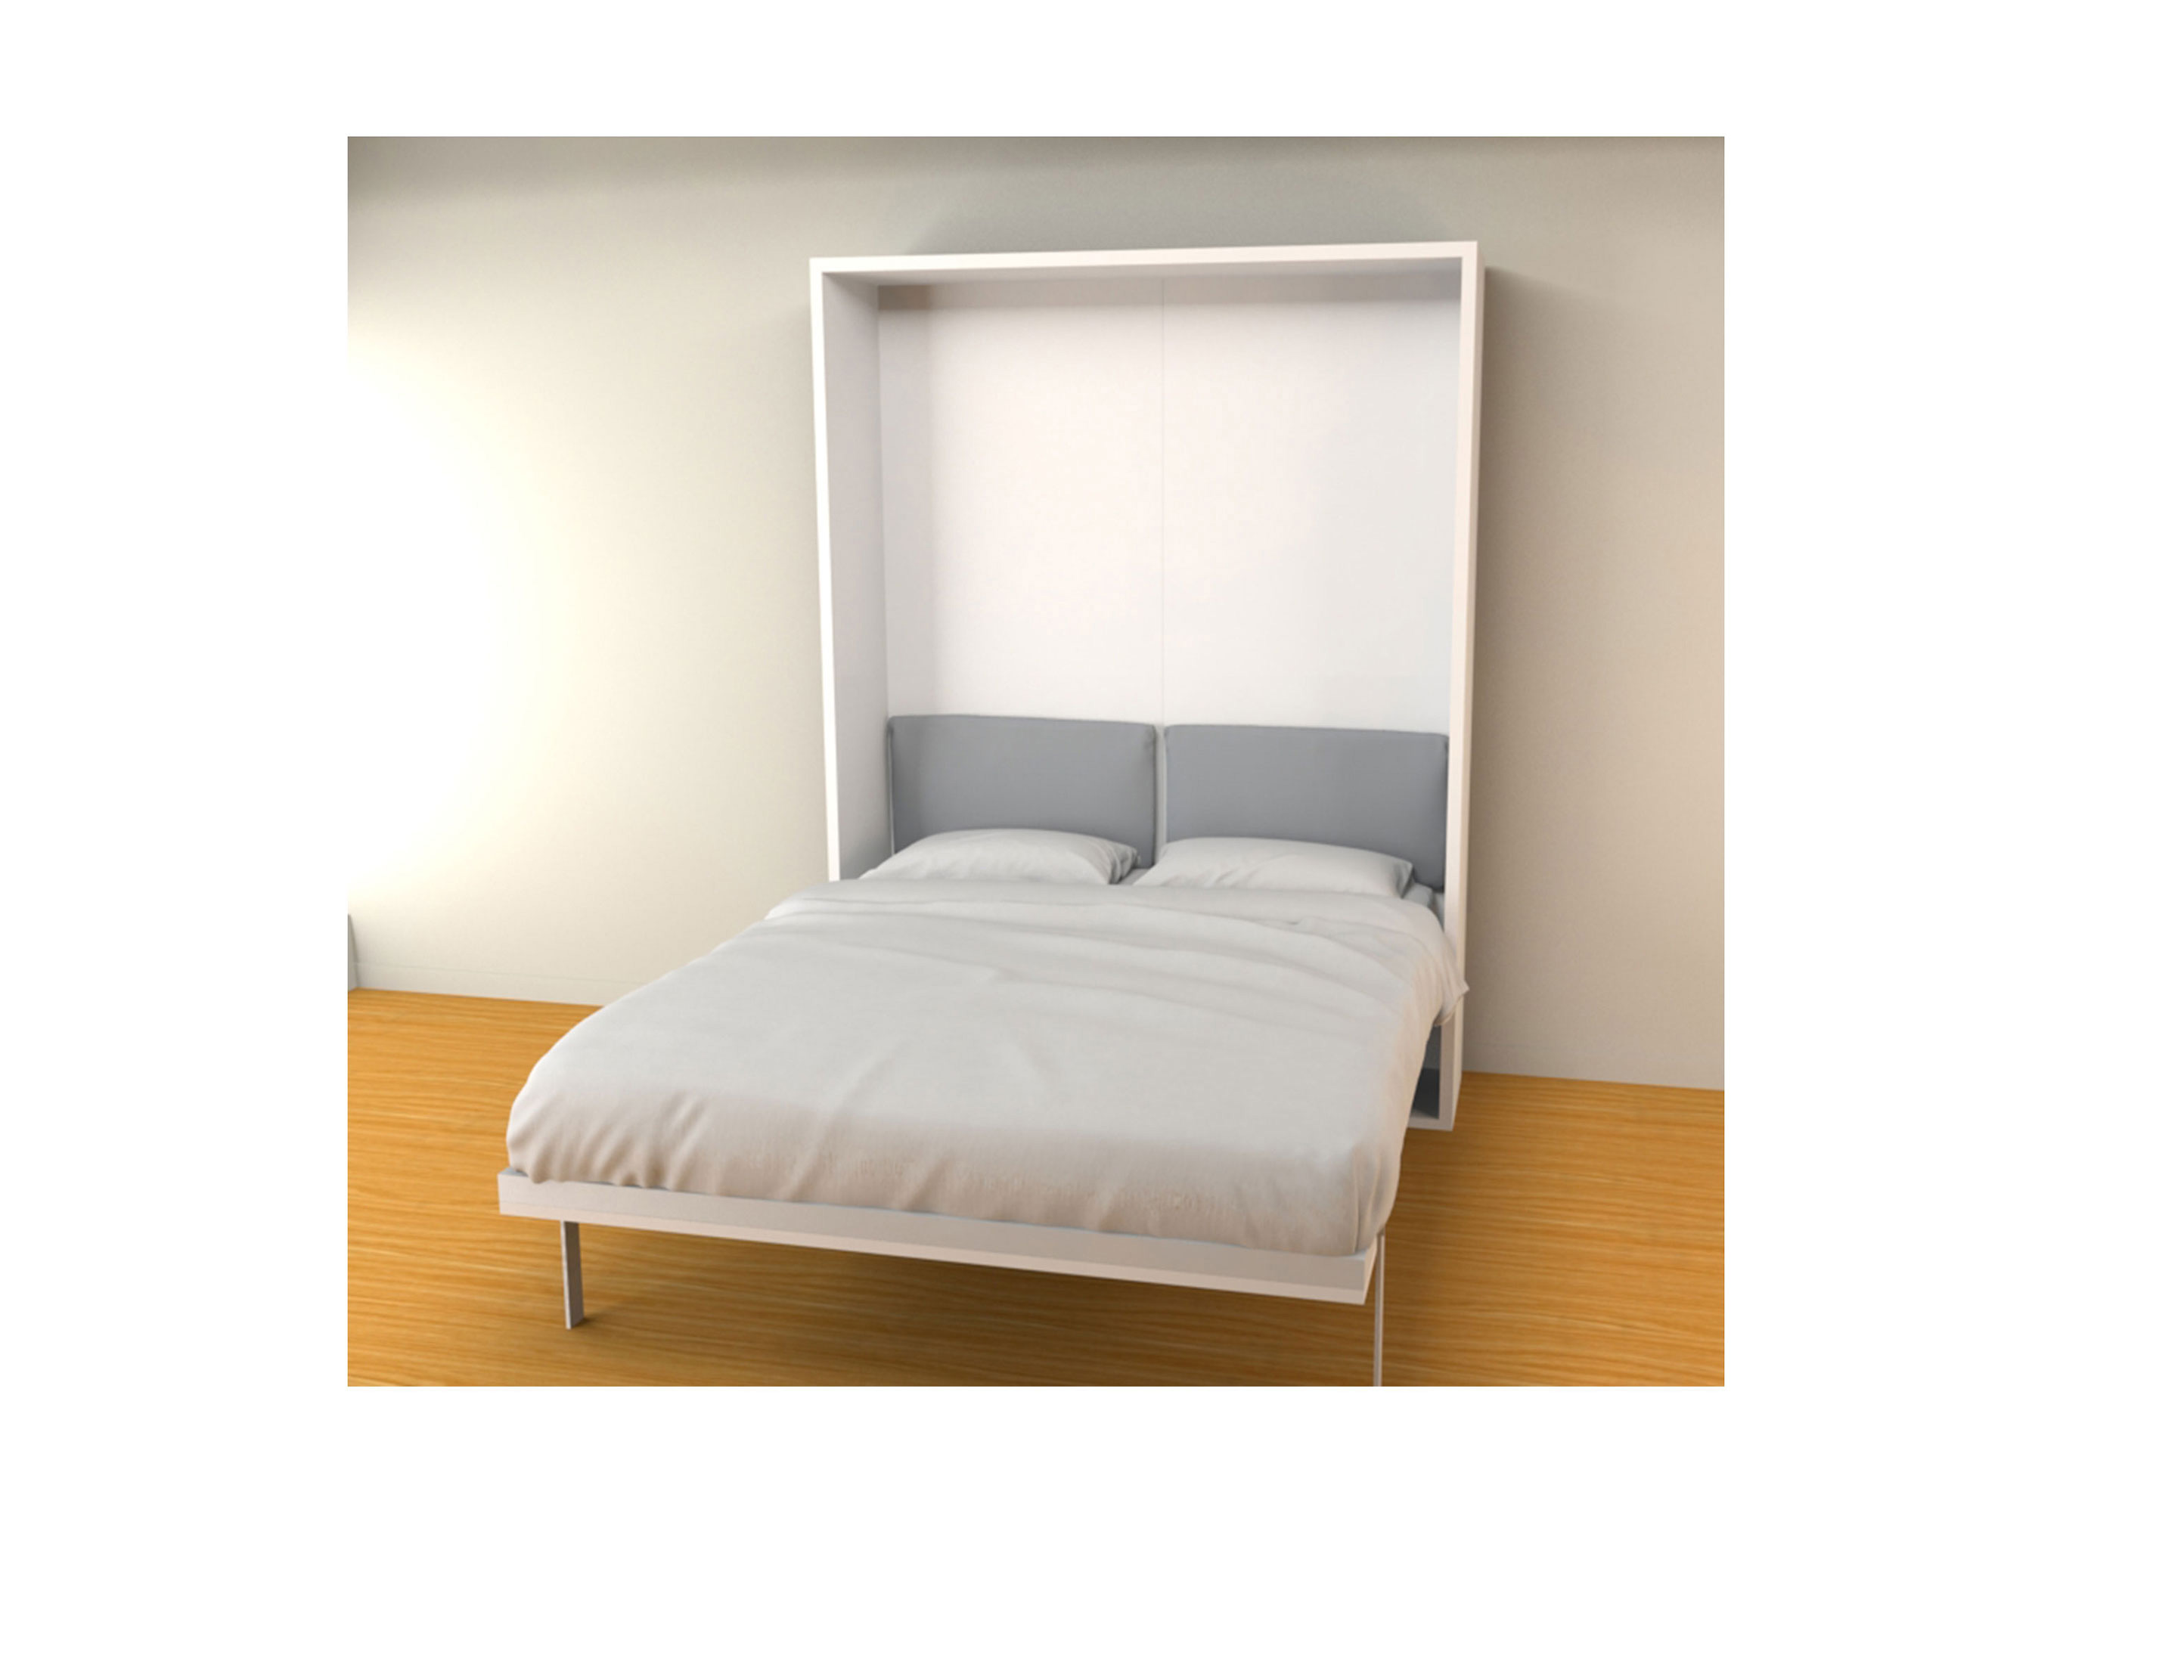 Hover Modern Double Murphy Bed Expand Furniture Folding Tables Smarter Wall Beds Space Savers